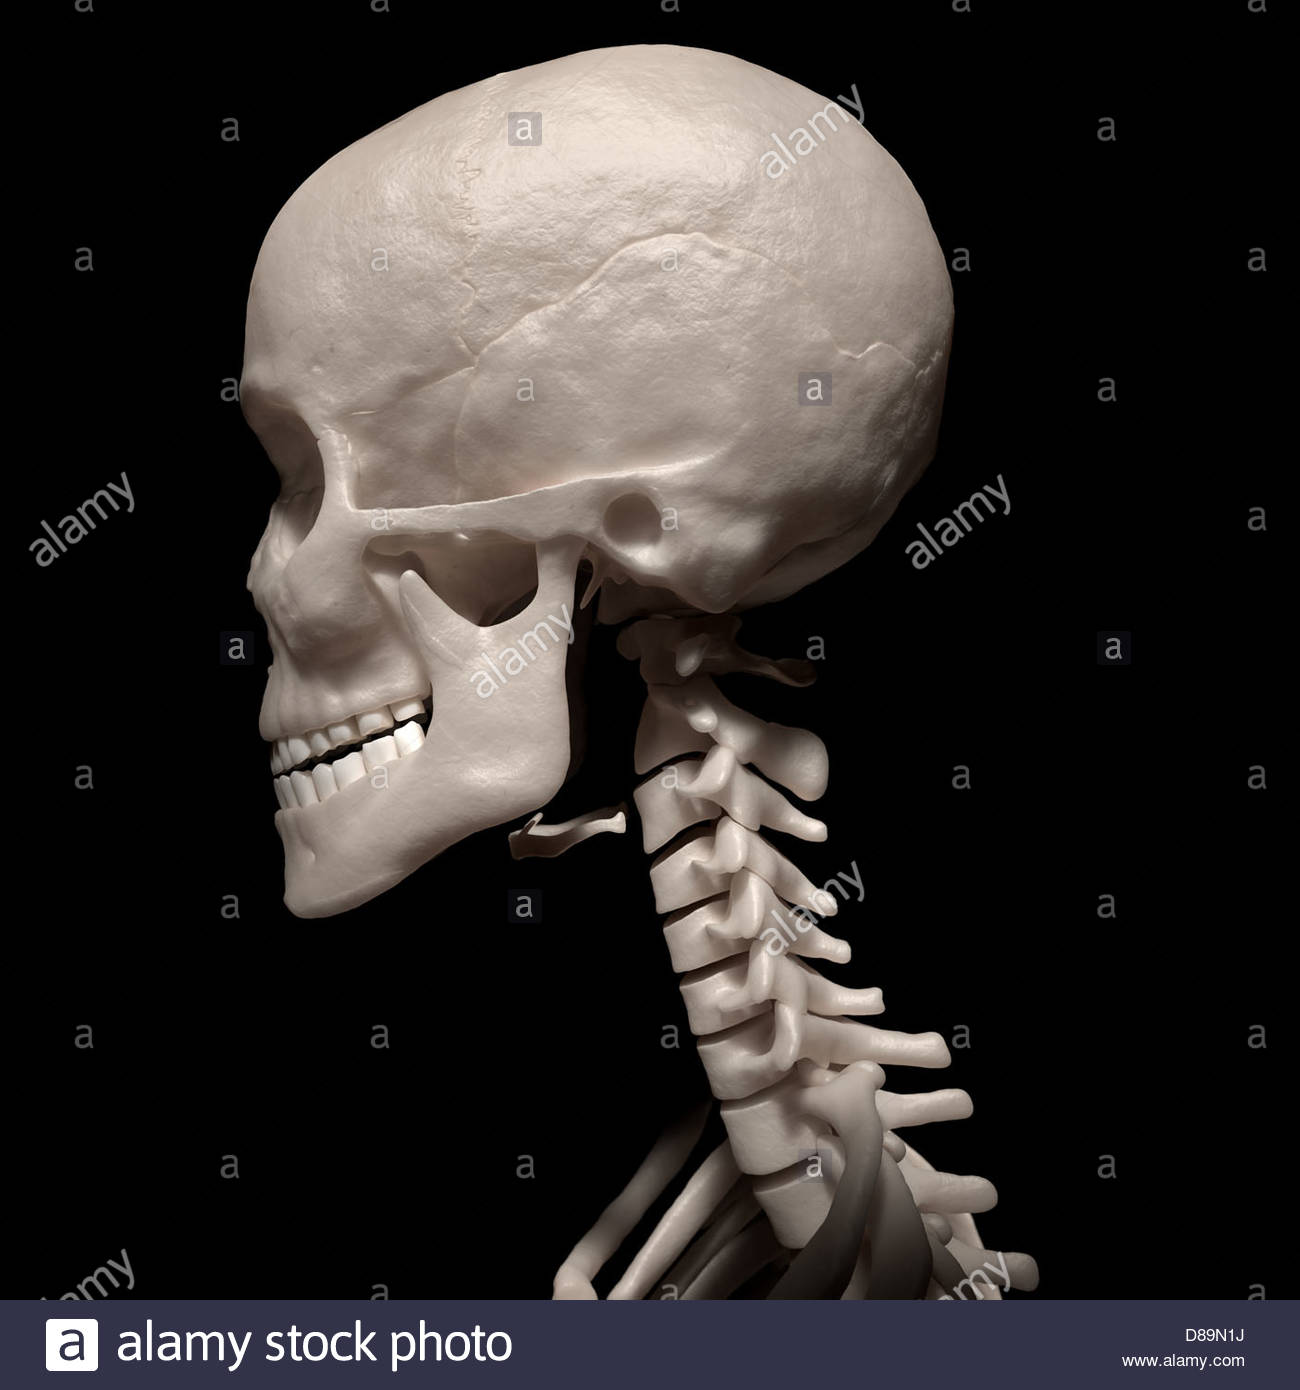 Digital Medical Illustration Lateral Side View Of Human Skull And